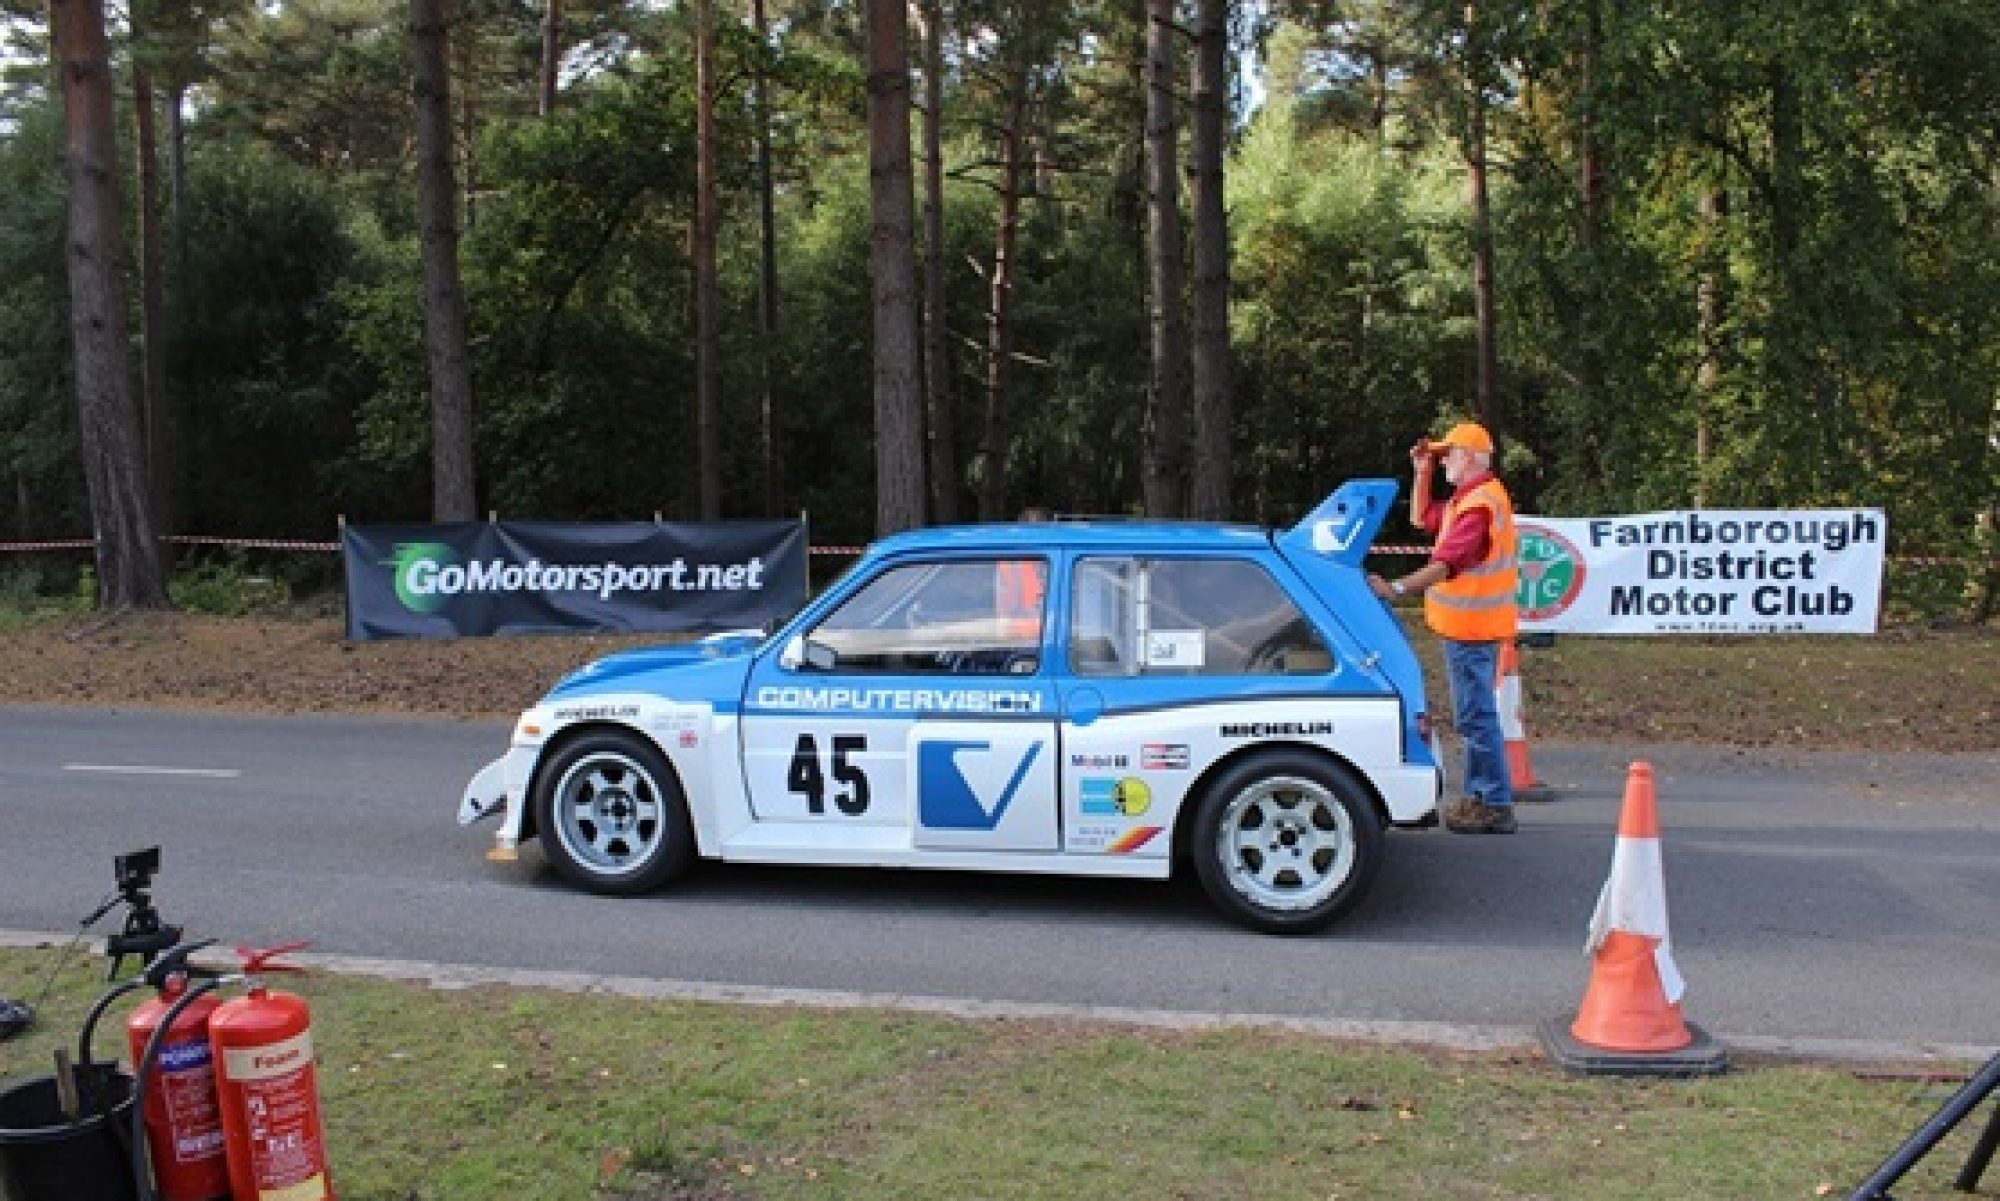 Farnborough District Motor Club (FDMC)